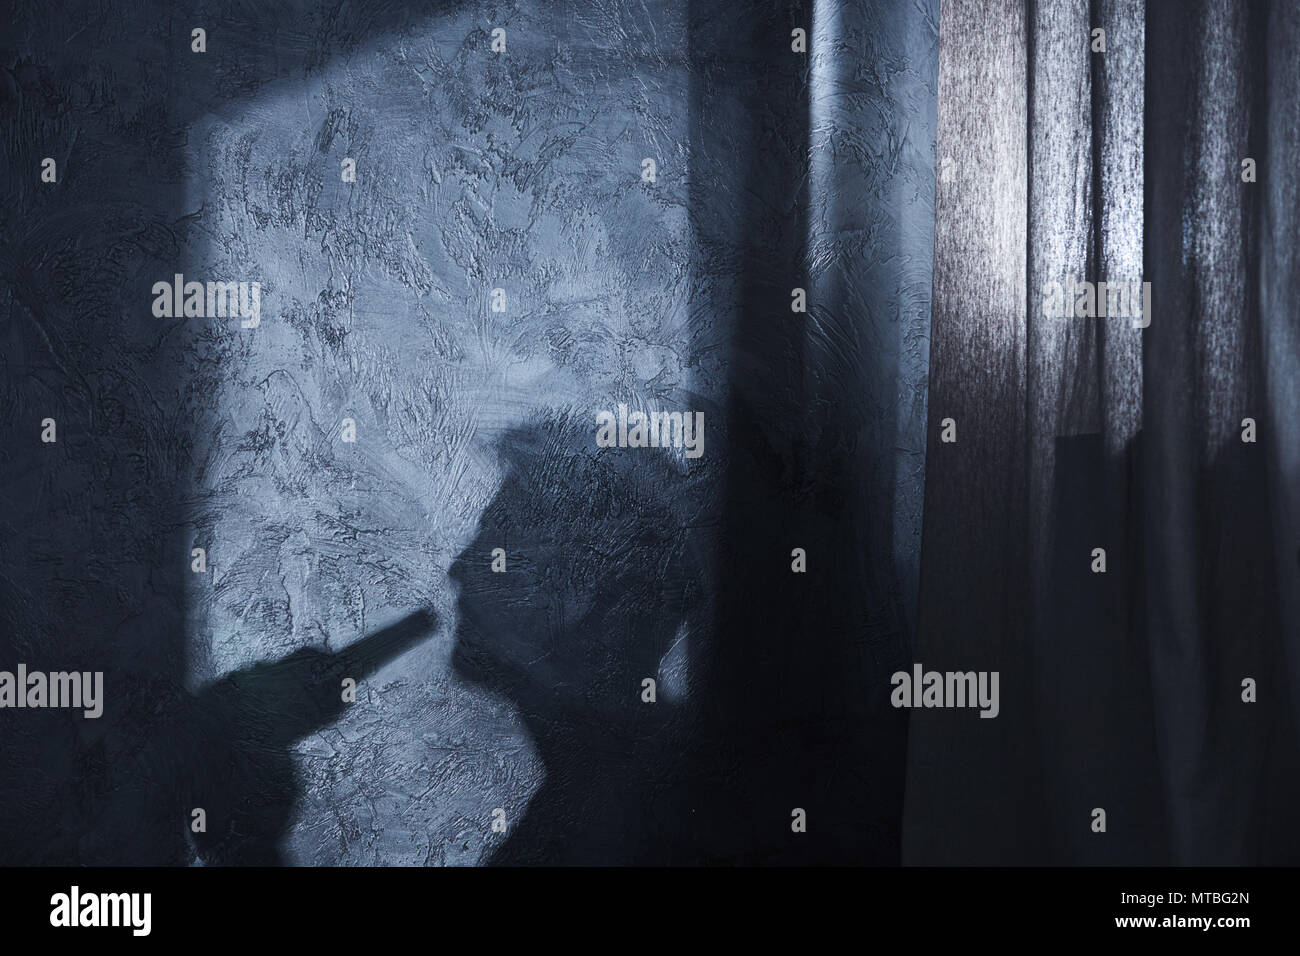 Shadow of drinking man on the wall - Stock Image